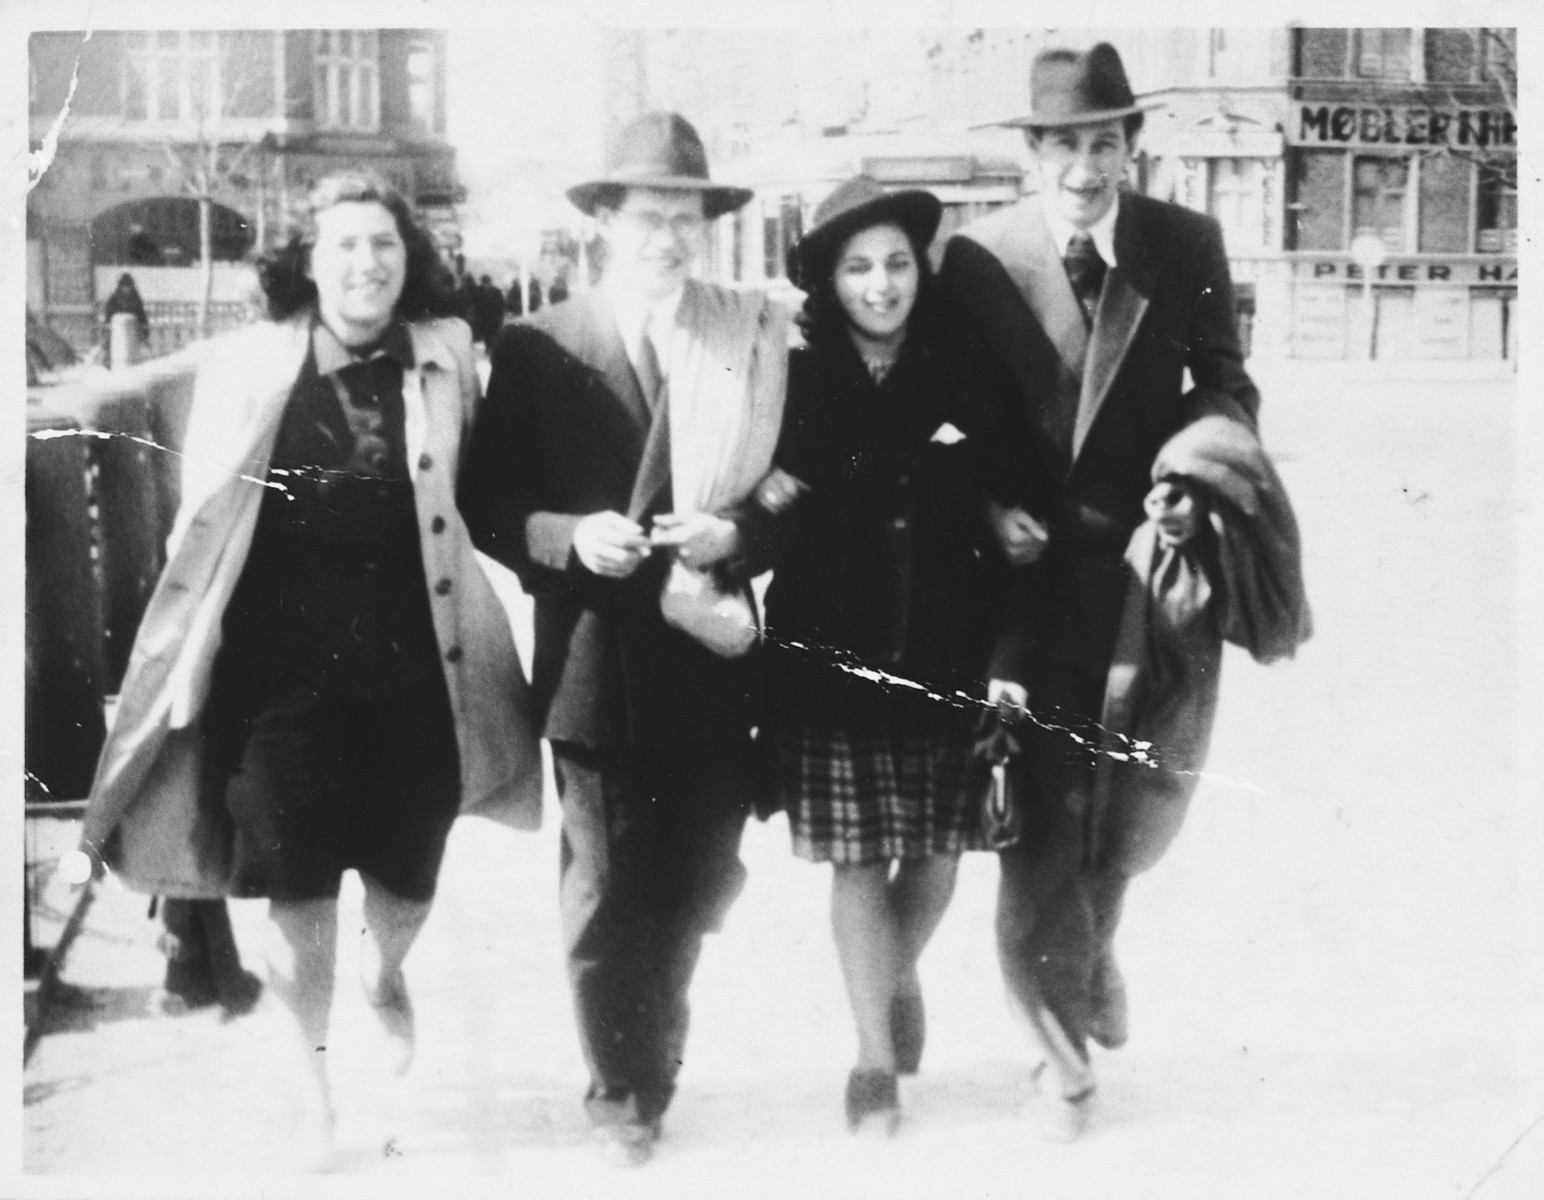 Four young Jewish men and women walk along the Fredriksgade in downtown Copenhagen during the German occupation.  Pictured from left to right are: Esther Diament, David Nussbaum, Leila Altschuler, and Jac. Kransnik.